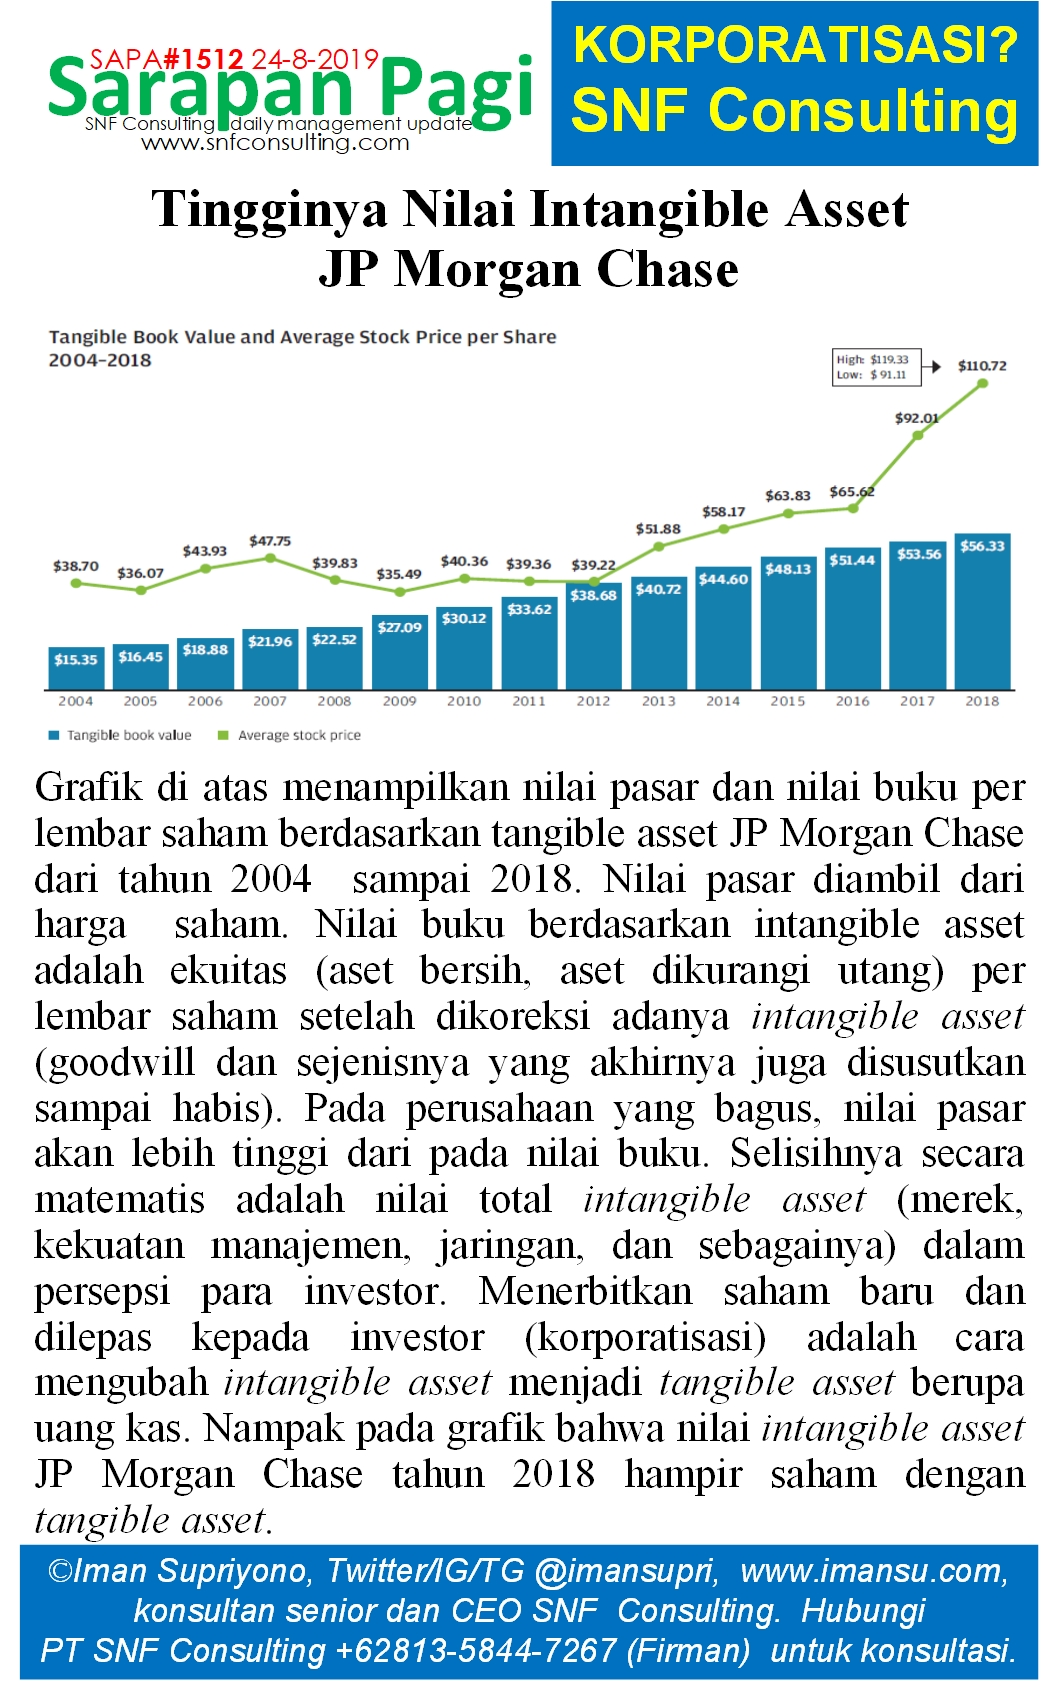 SAPA1512 JP Morgan Chase market vs book value